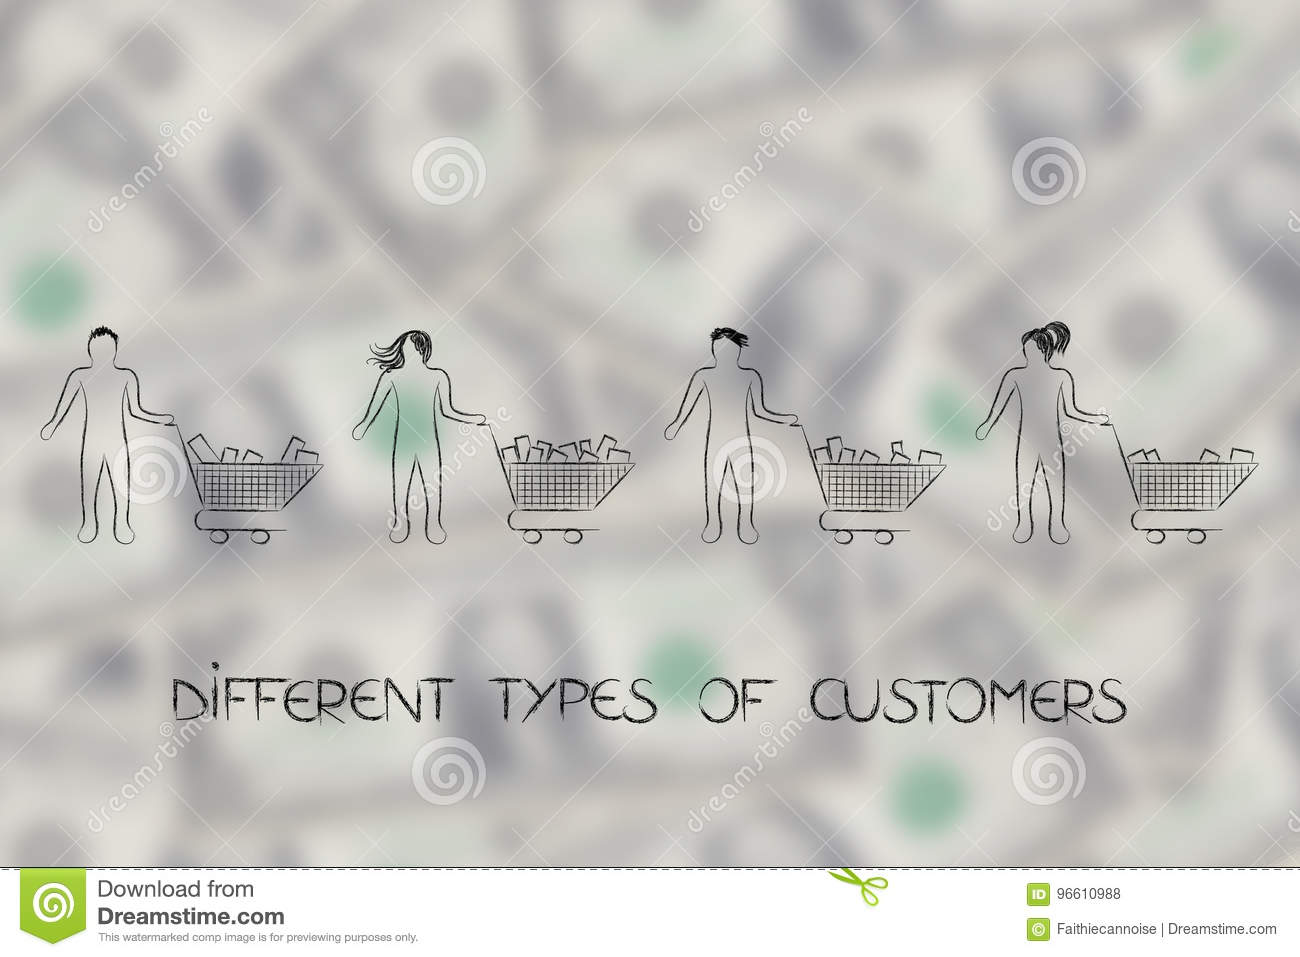 what are the types of customers